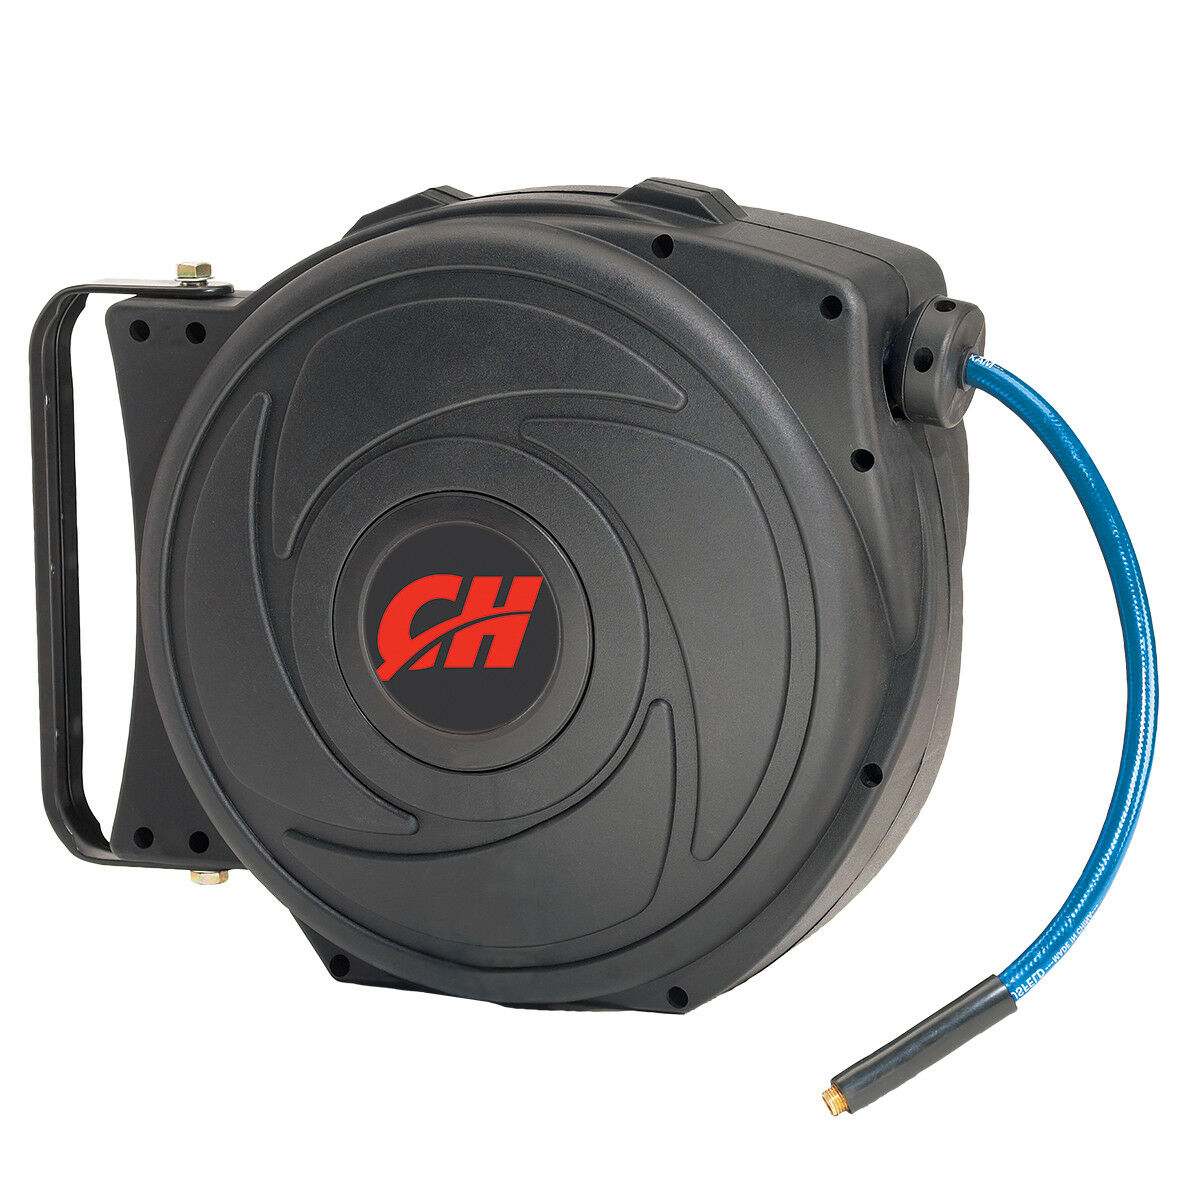 Air Hose Reel with Retractable 50 Foot Hose, 3 8 Inch ID, Mountable, Swivel